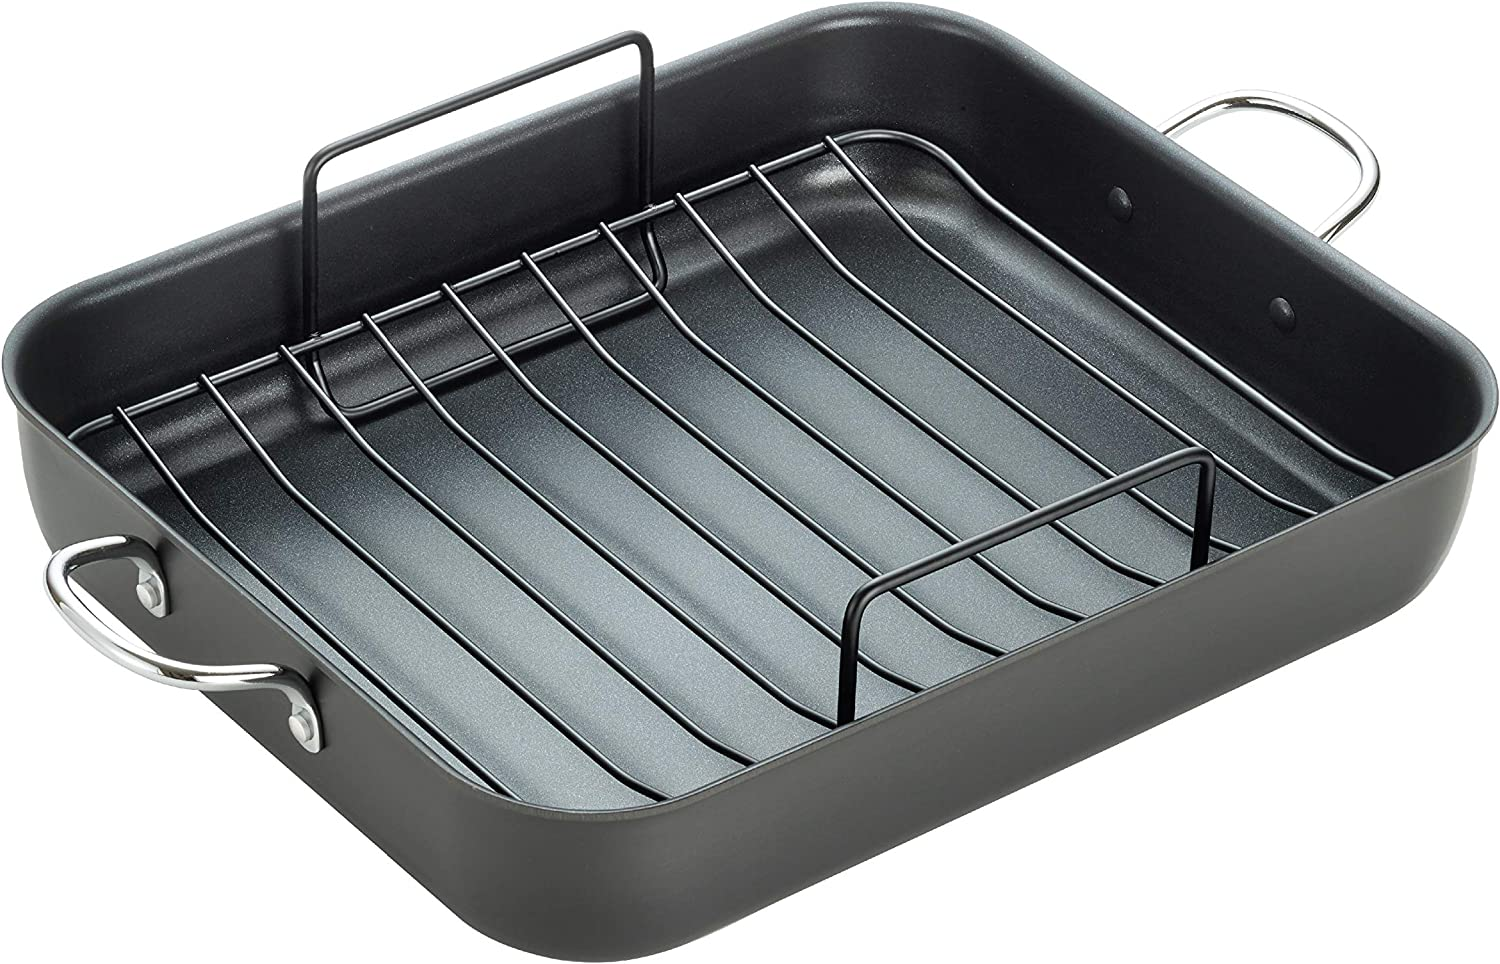 T-fal, Ultimate Hard Anodized, Nonstick 16 In. x 13 In. Roaster with Rack, Black, J145S2, 16 Inch x 13 Inch, Grey